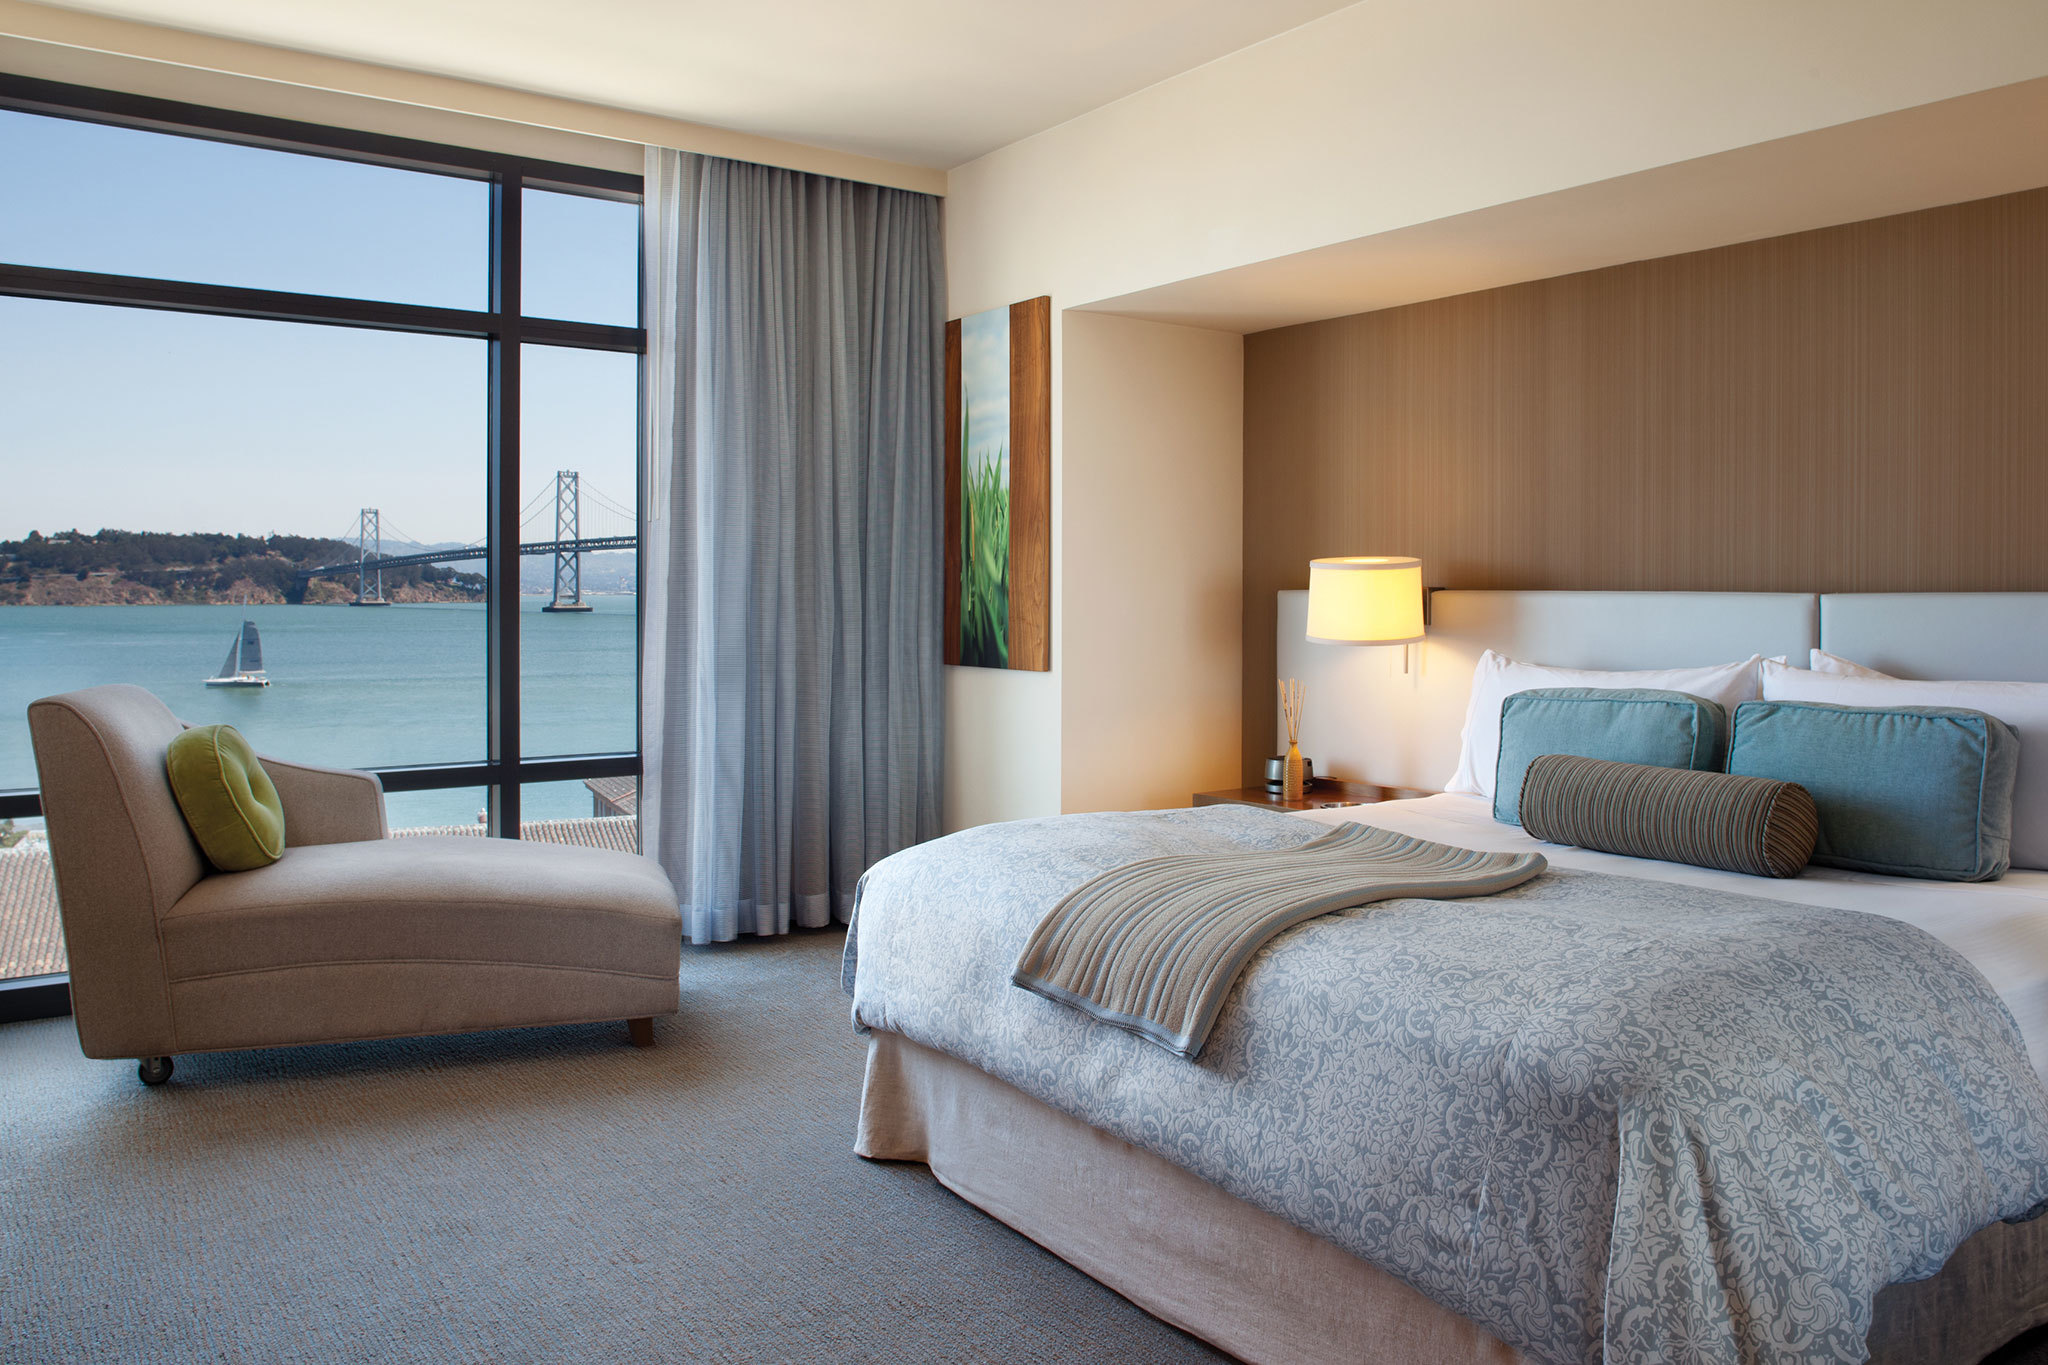 18 Best Hotels In San Francisco Time Out Affordable To